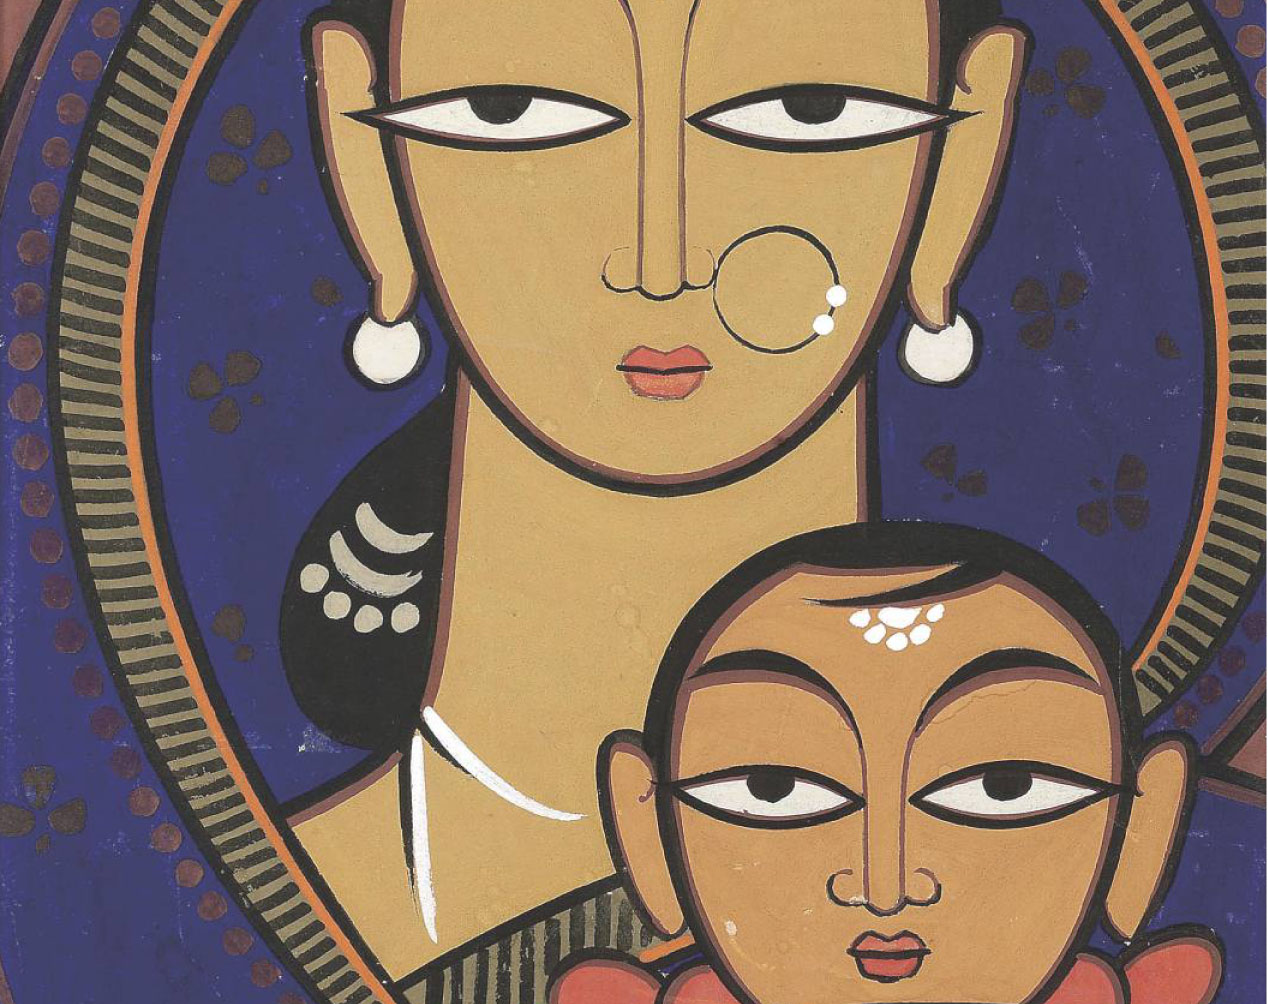 Ayurvedsutra Vol 2 Issue 874 - Mother